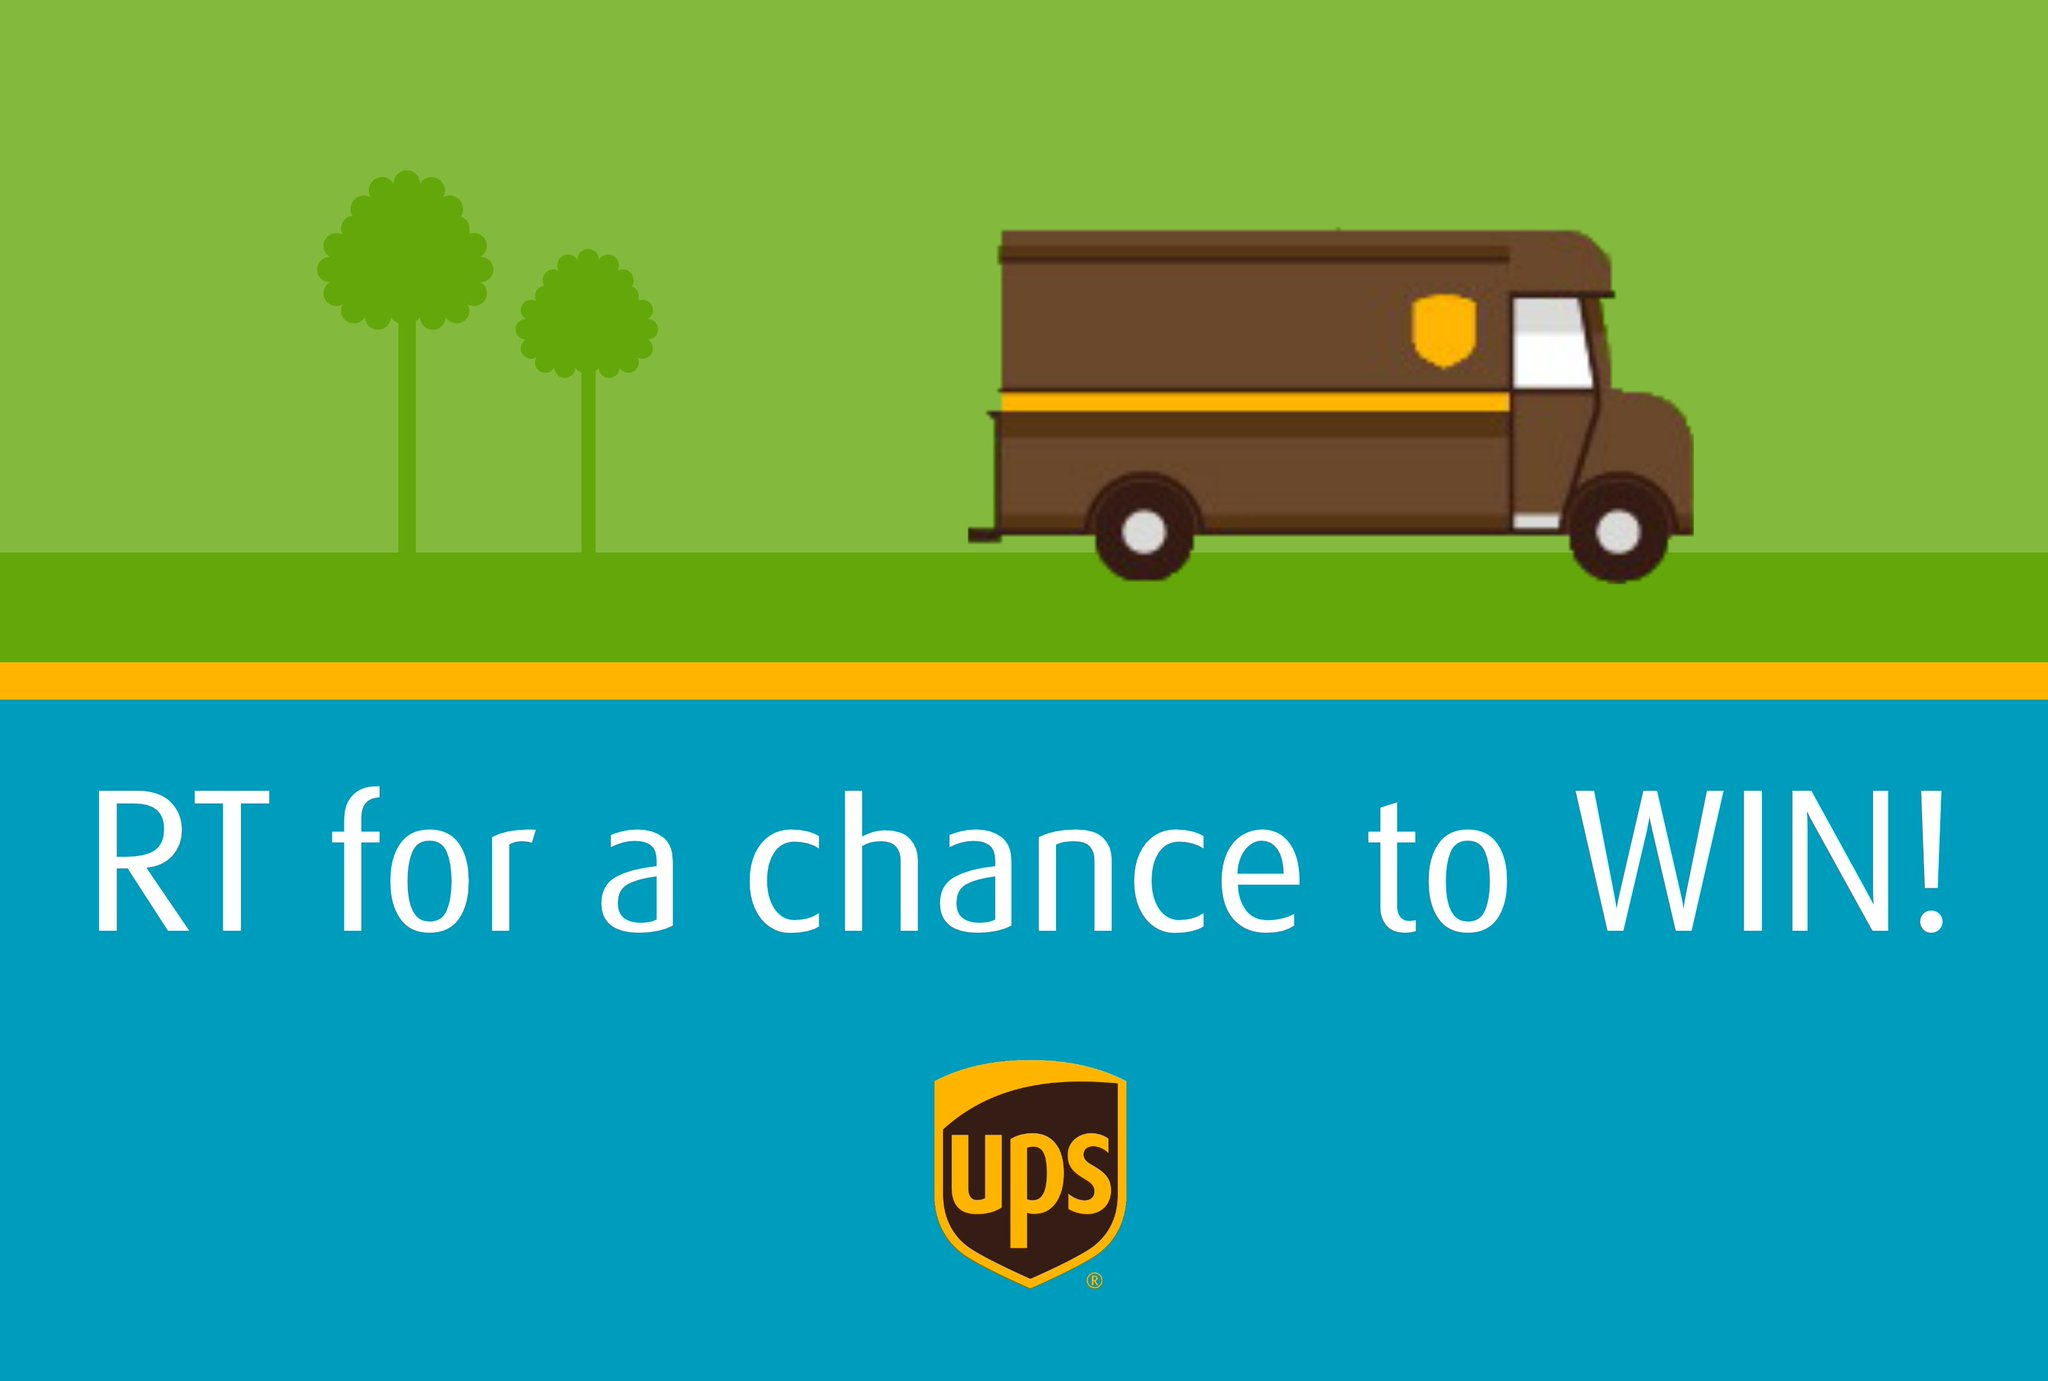 Visit https://t.co/2sO3lCcxhe for holiday season #jobs! RT for a chance to win our #Giveaway this Friday! https://t.co/vWpqQuoYWa